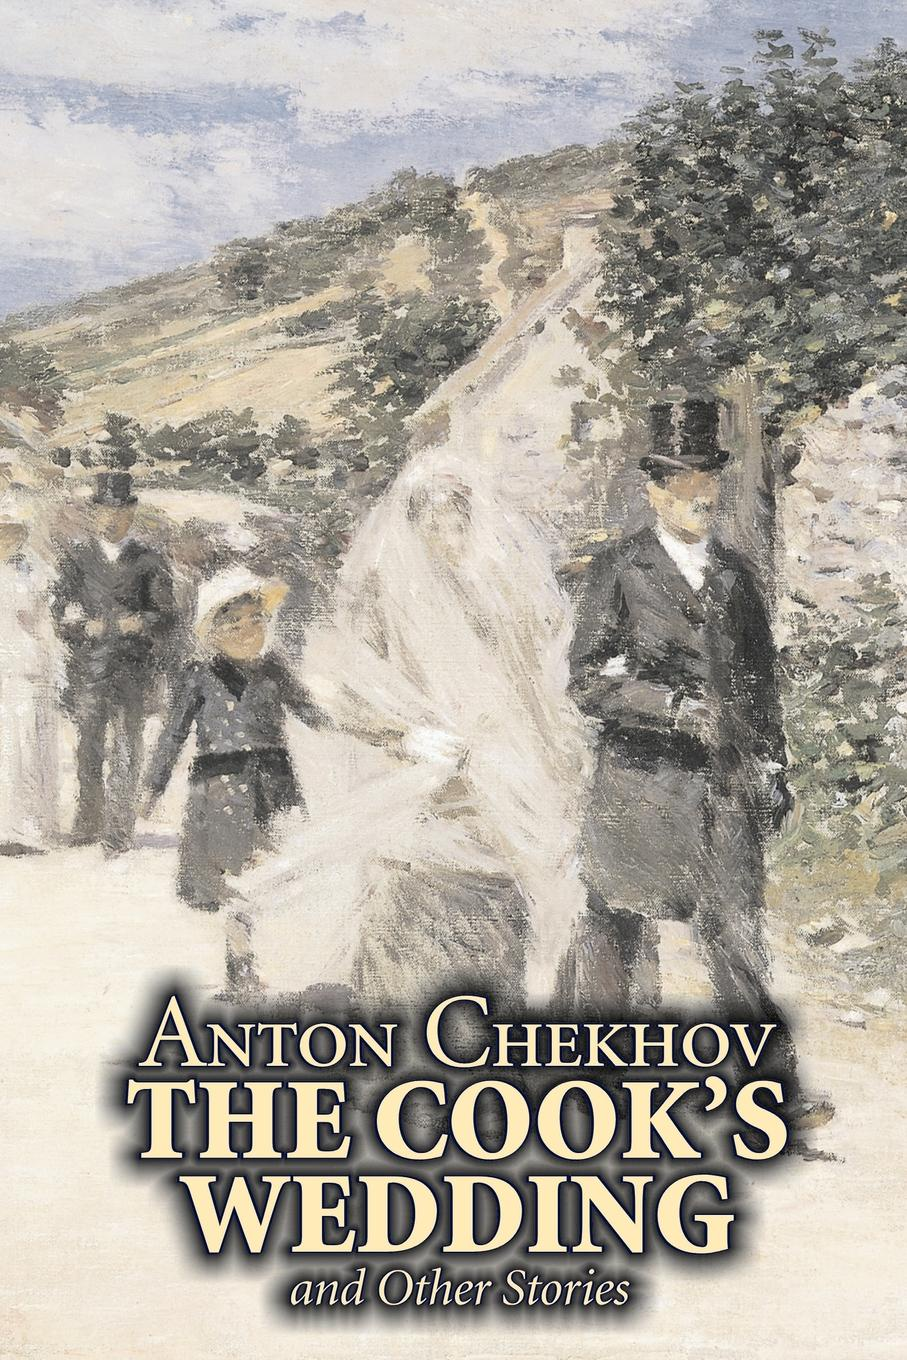 Anton Chekhov, Constance Garnett The Cook's Wedding and Other Stories by Anton Chekhov, Fiction, Short Stories, Classics, Literary